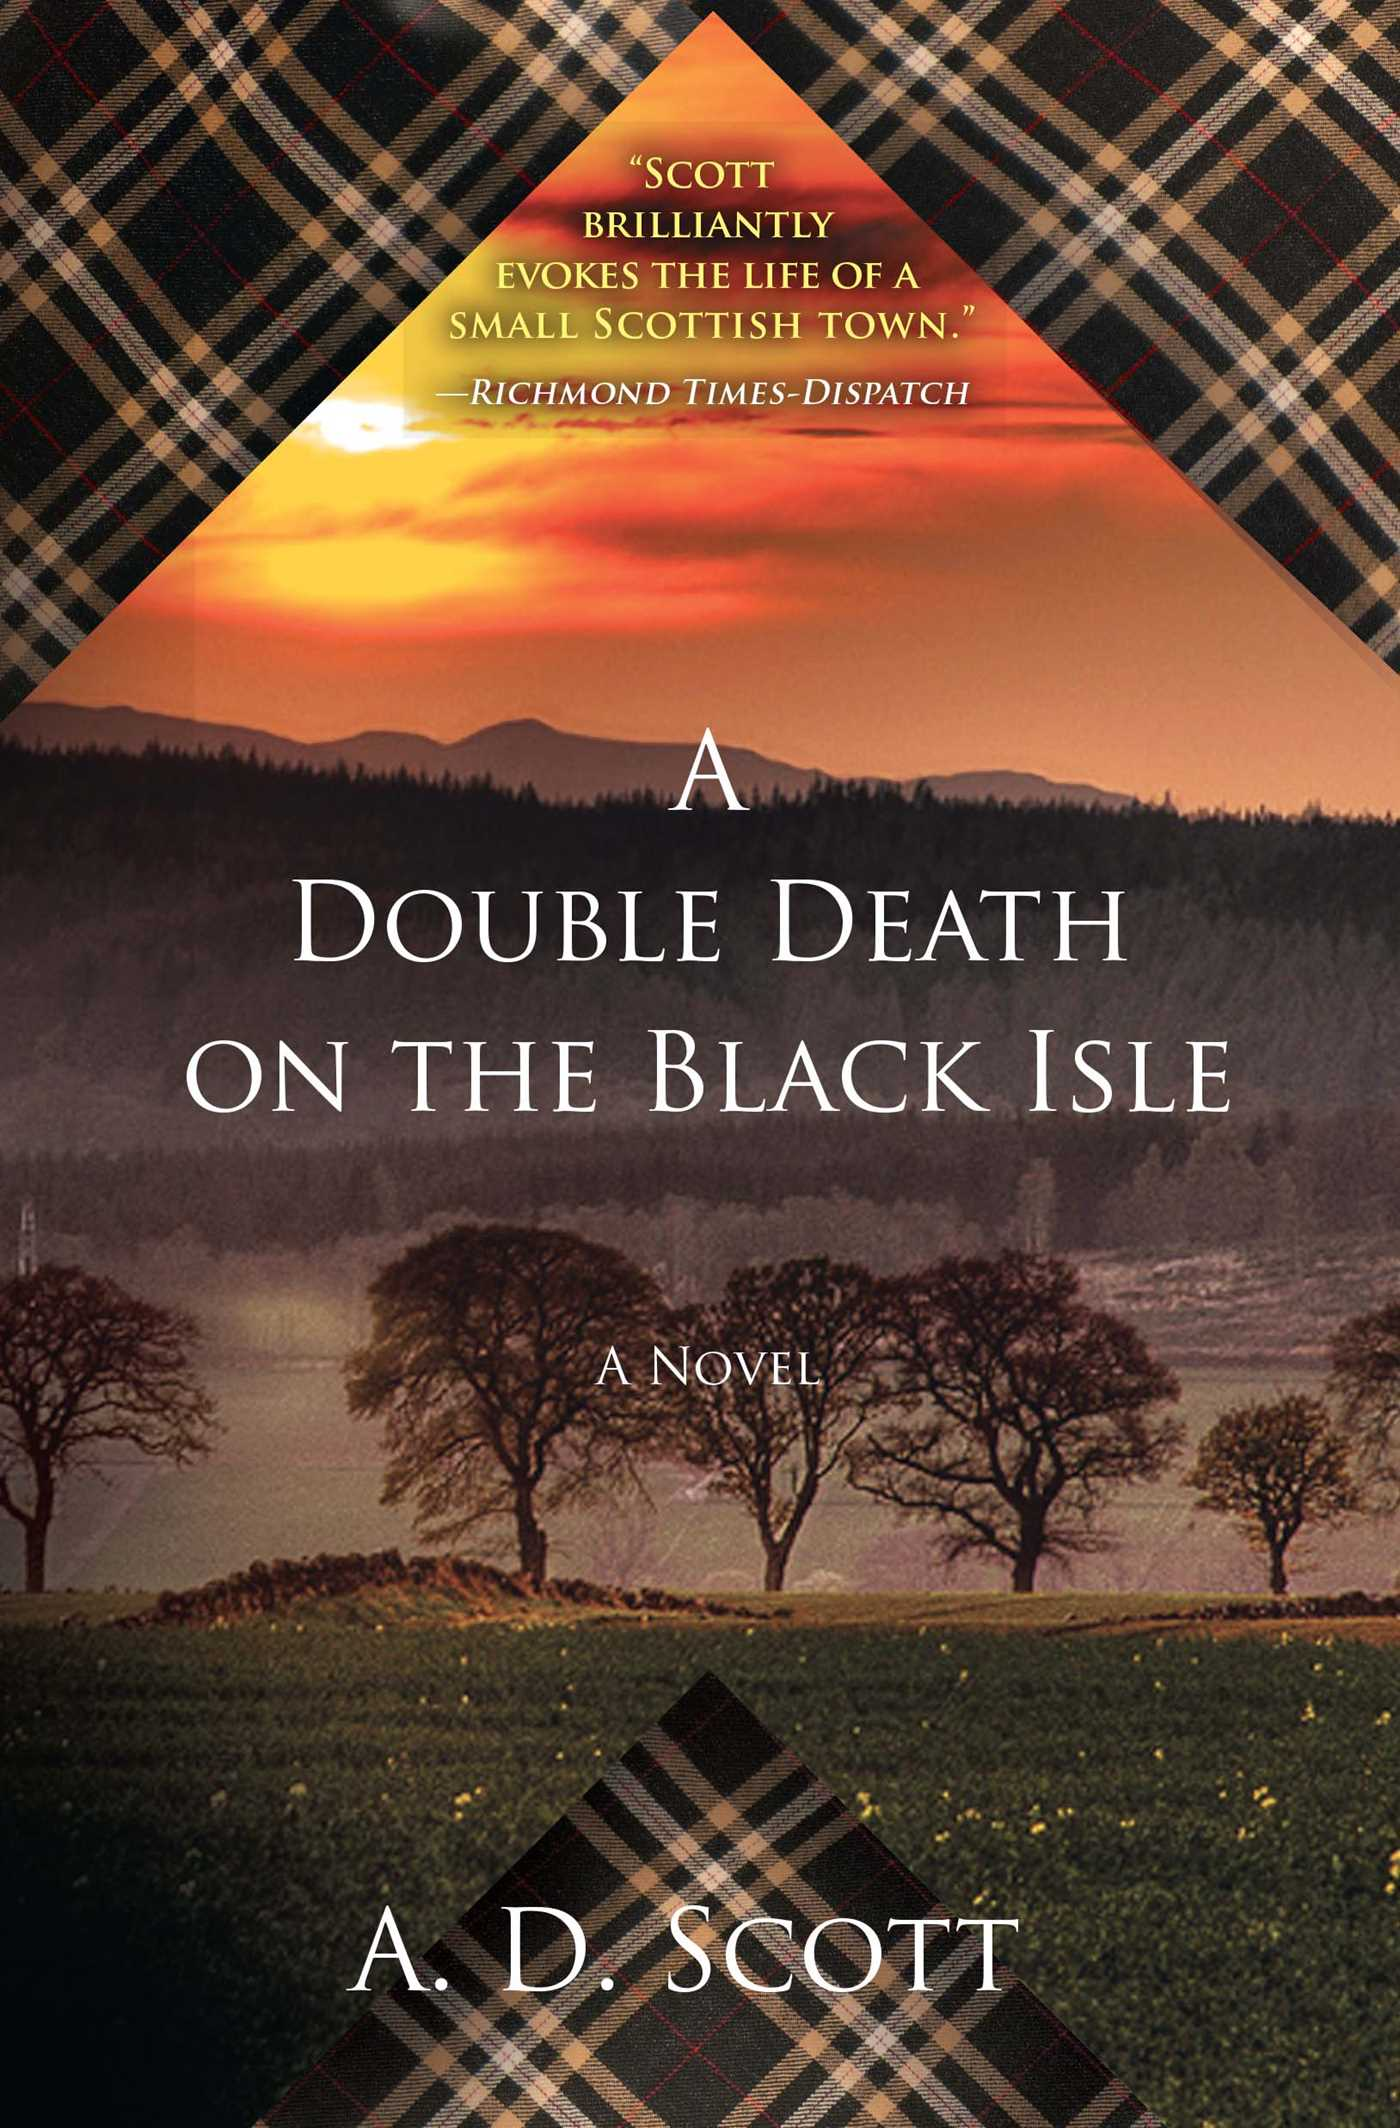 A double death on the black isle 9781439154946 hr